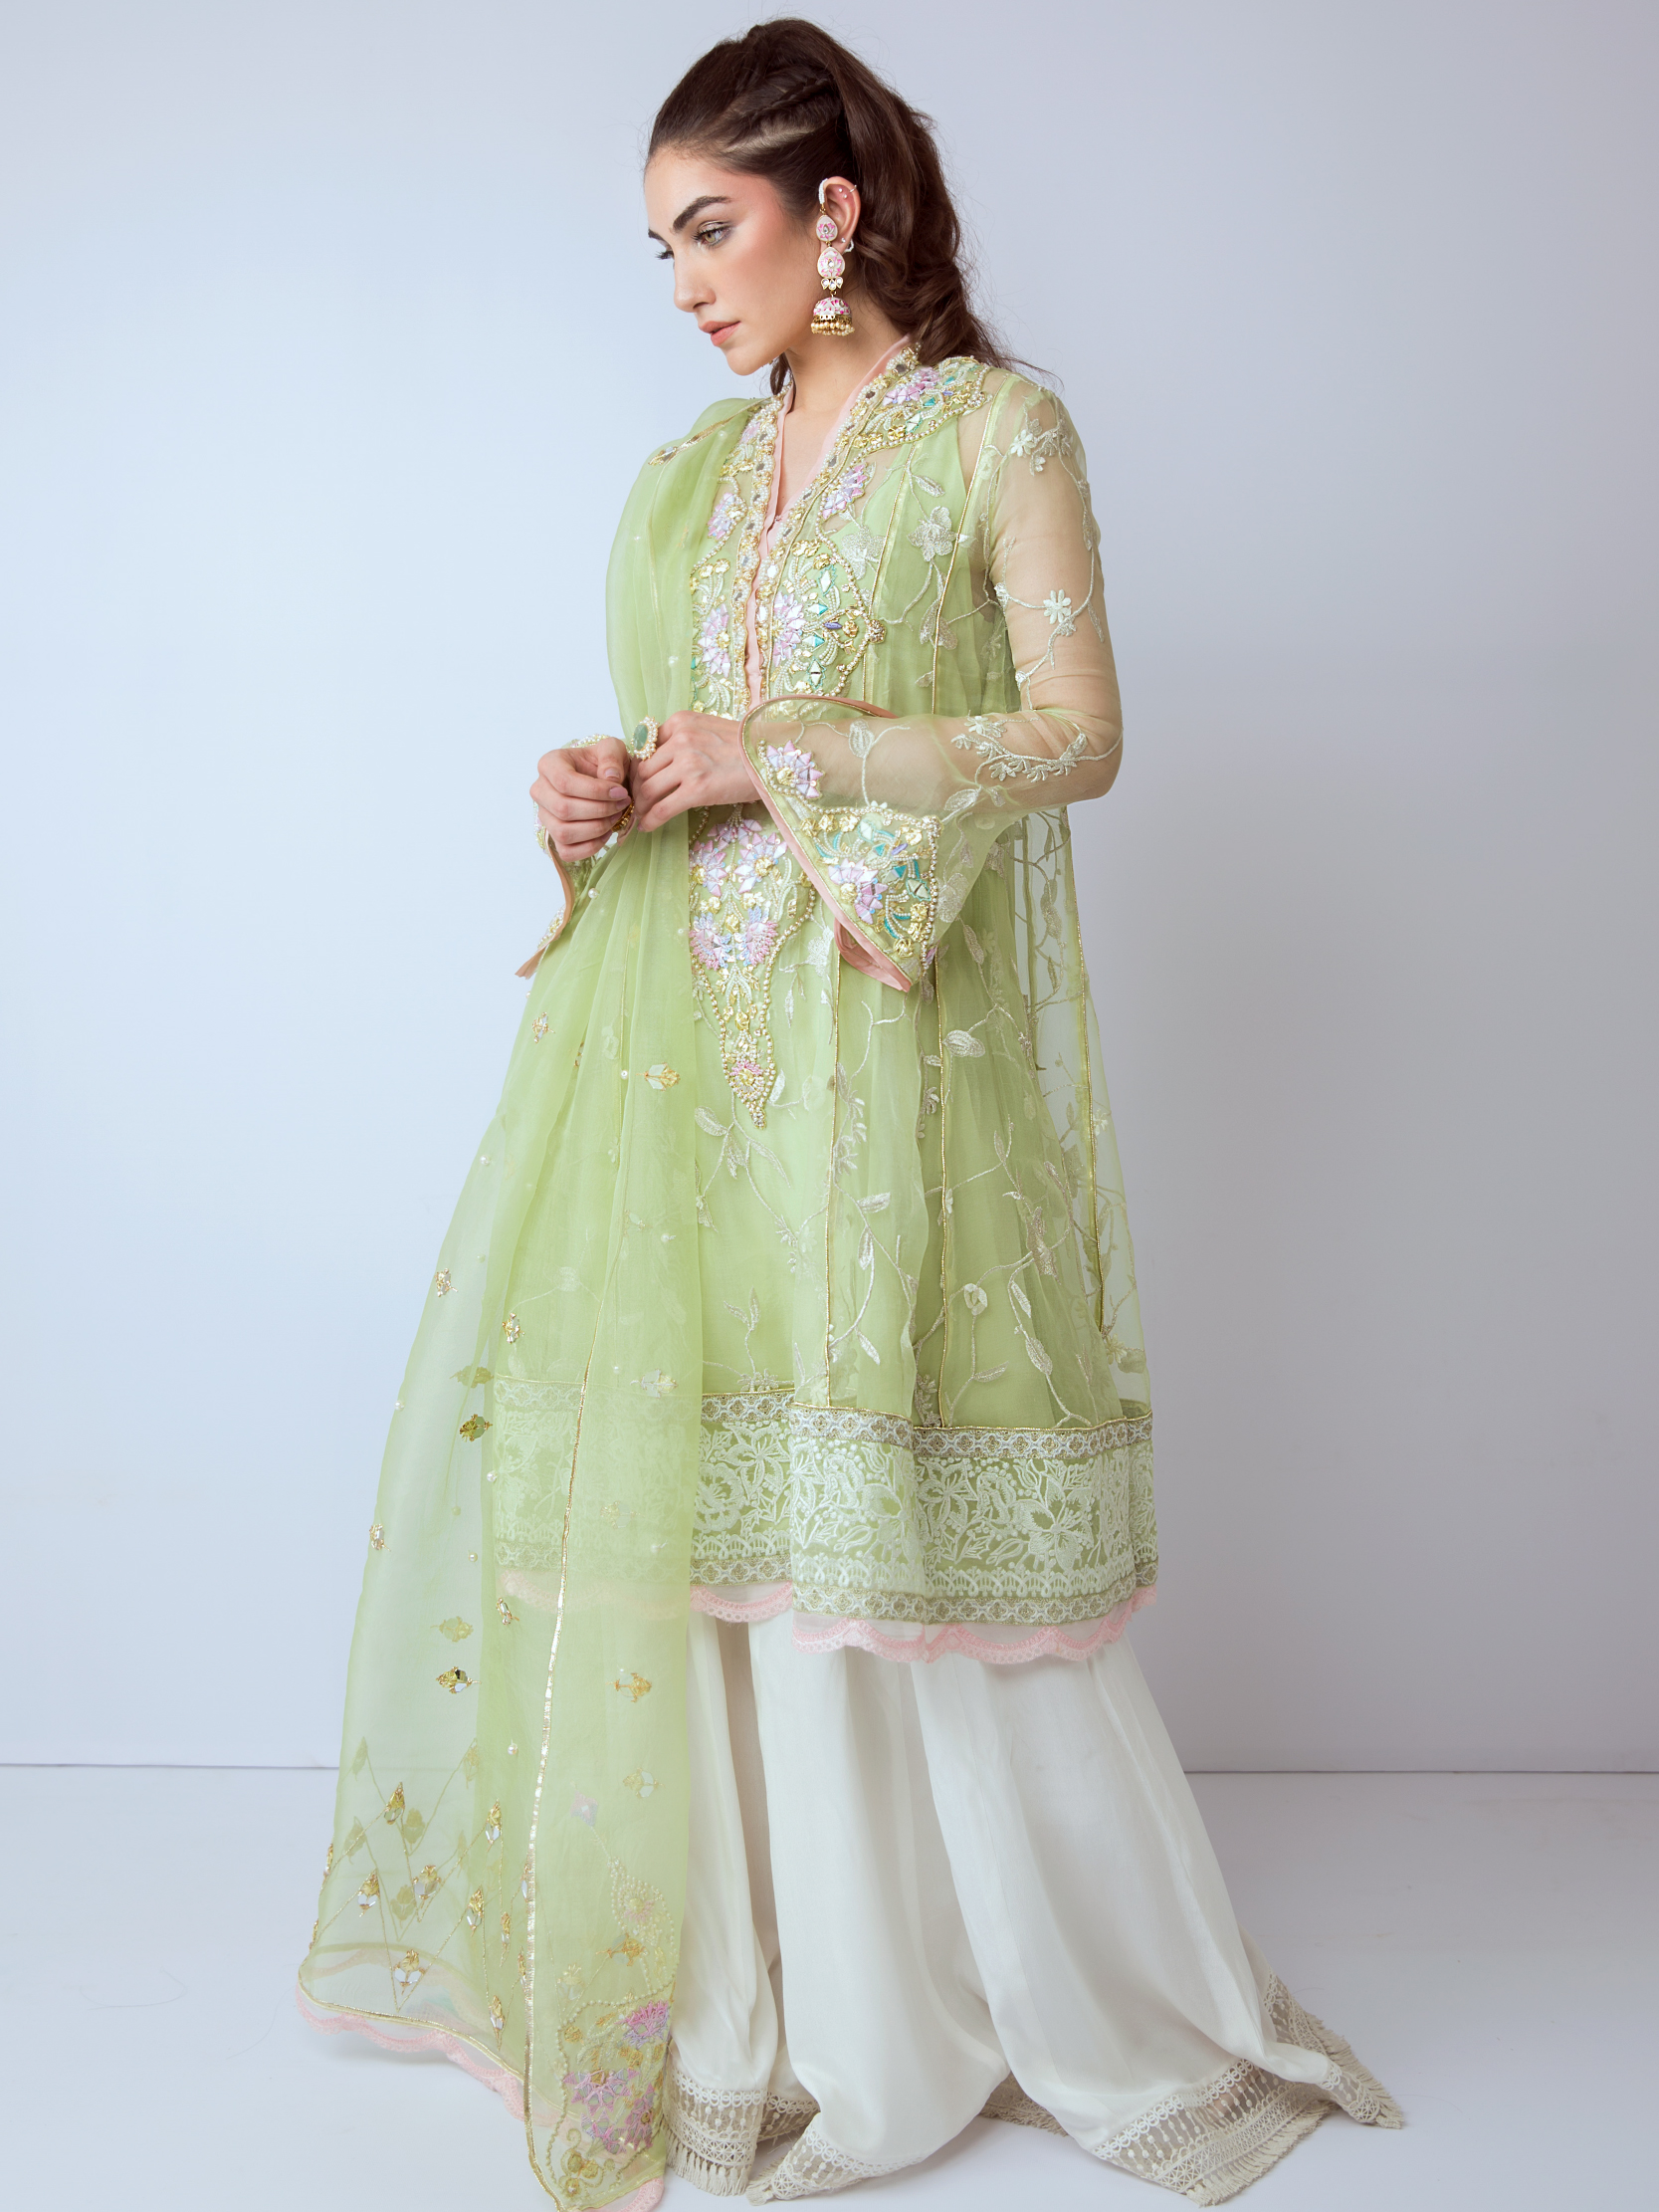 PERSIAN MIRROR- LUXE EMBROIDERED ORGANZA PANELLED FLARED SHIRT